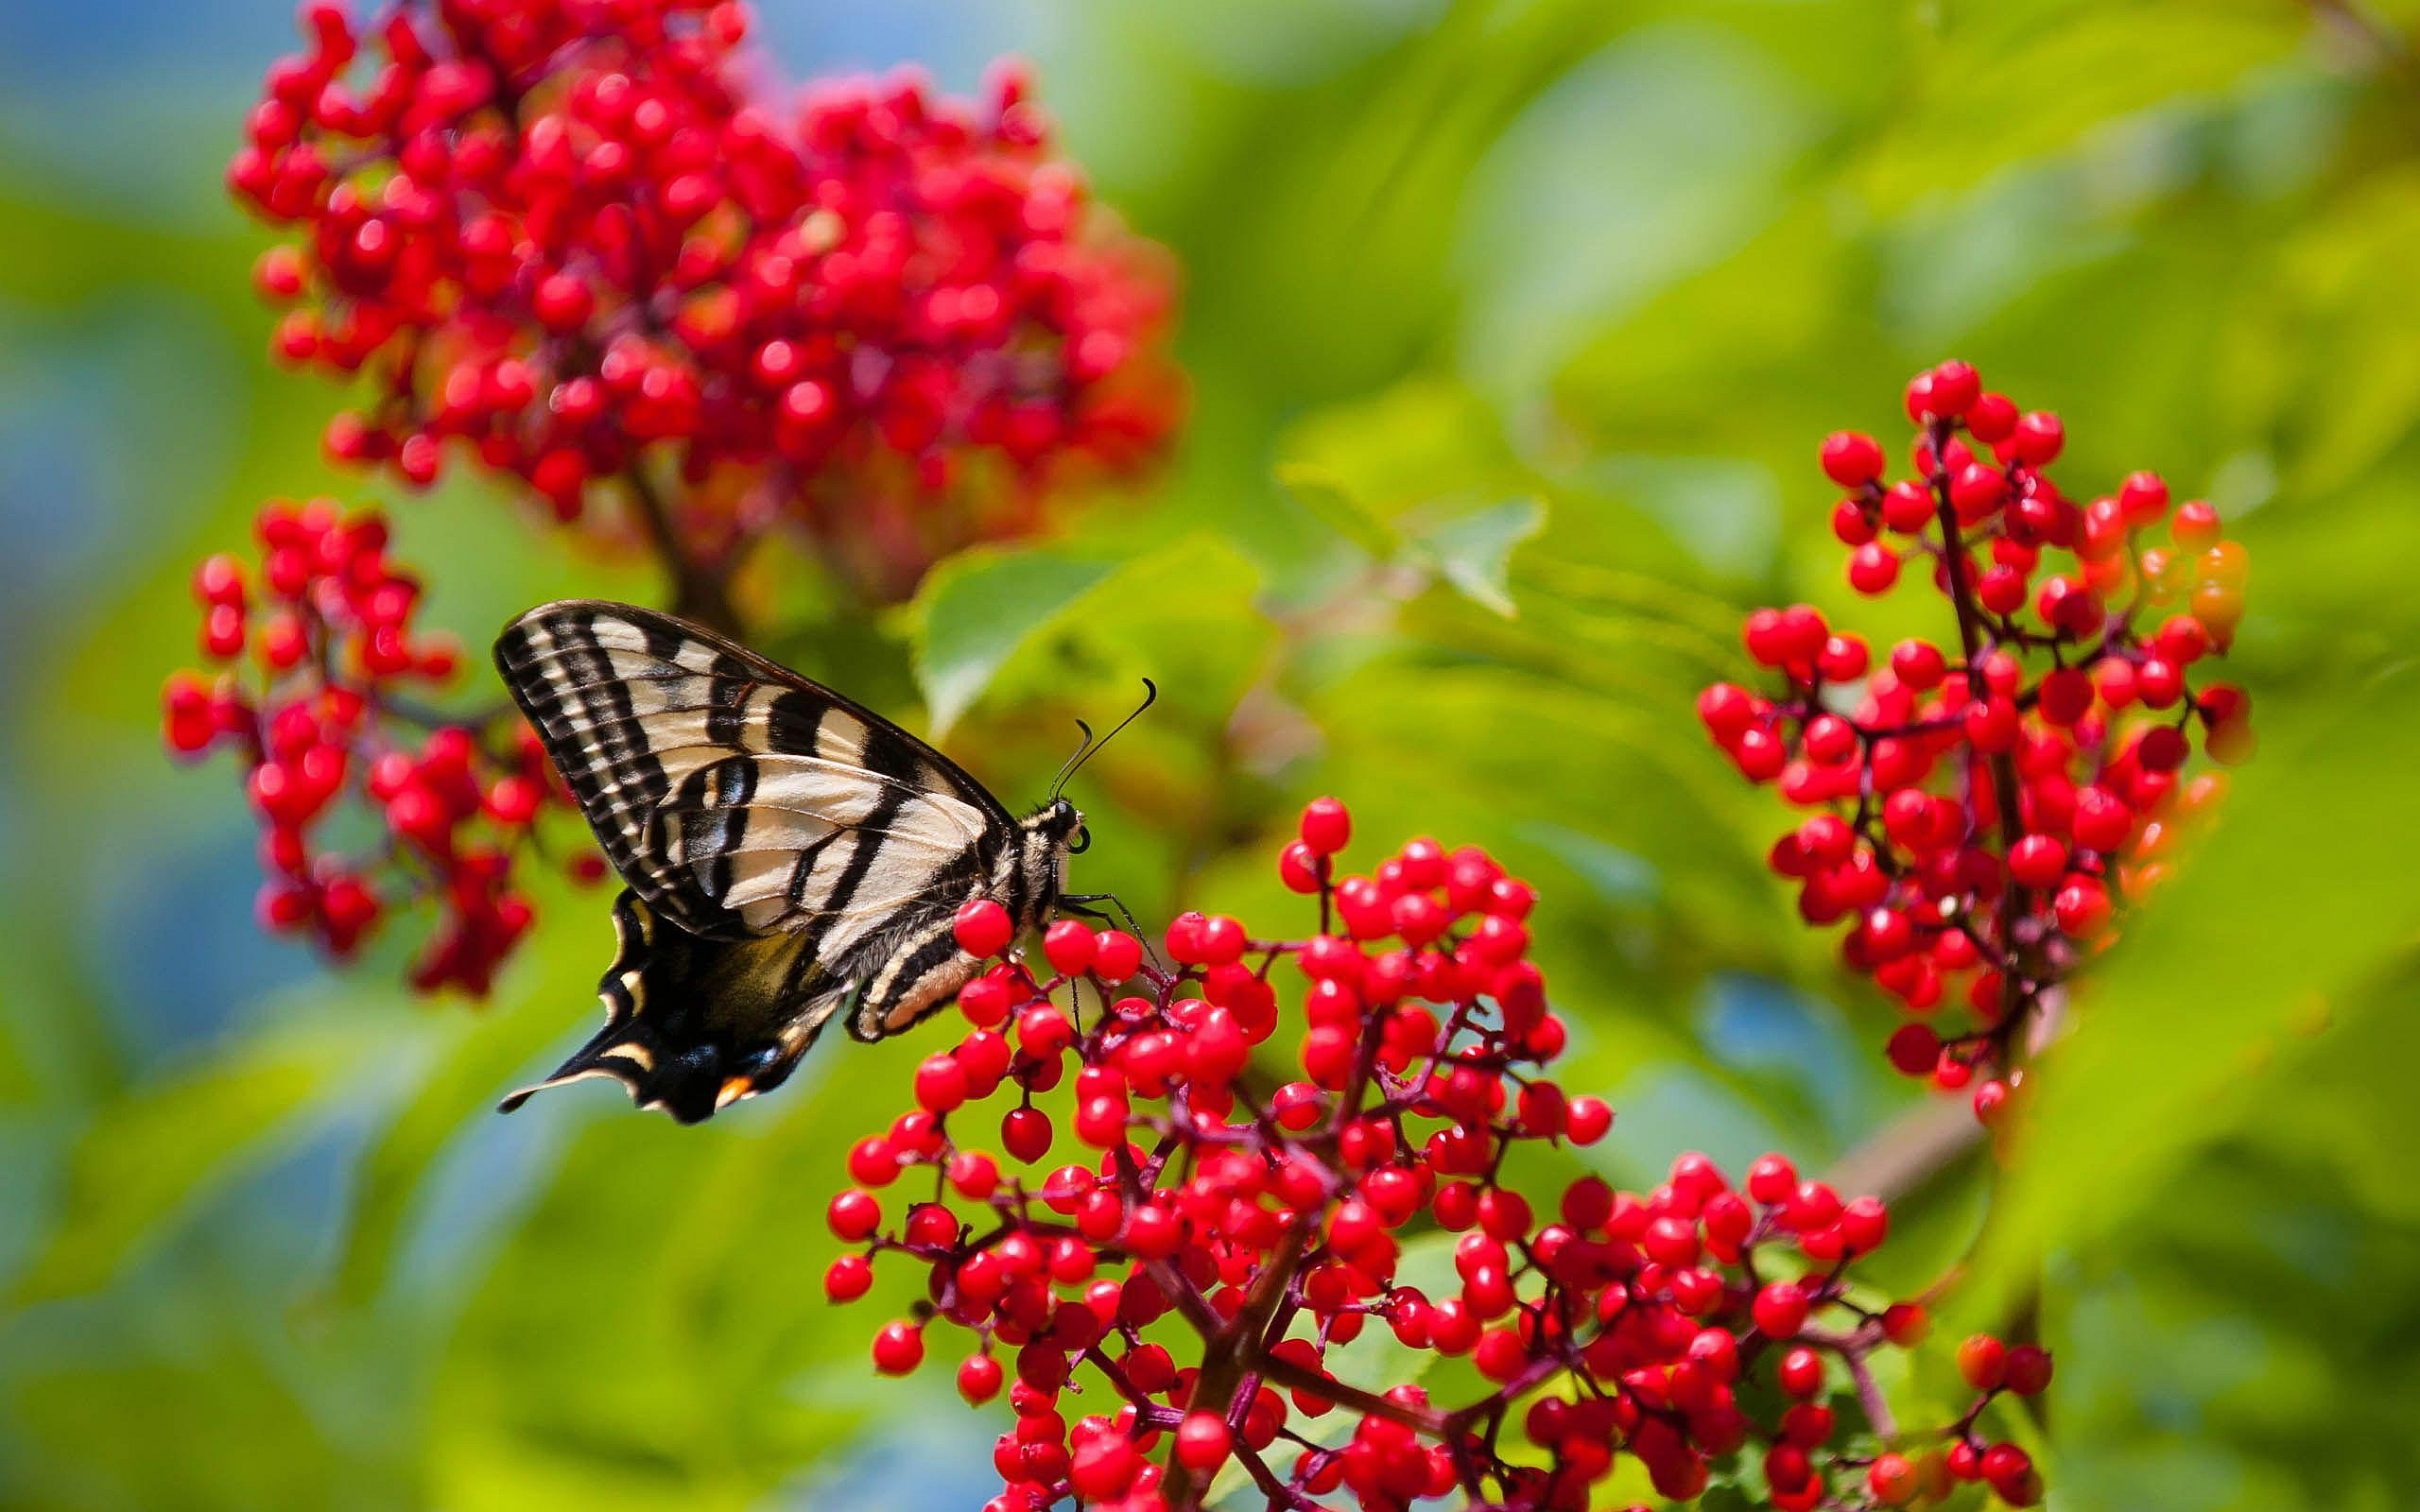 colorful butterfly pictures - HD Desktop Wallpapers | 4k HD